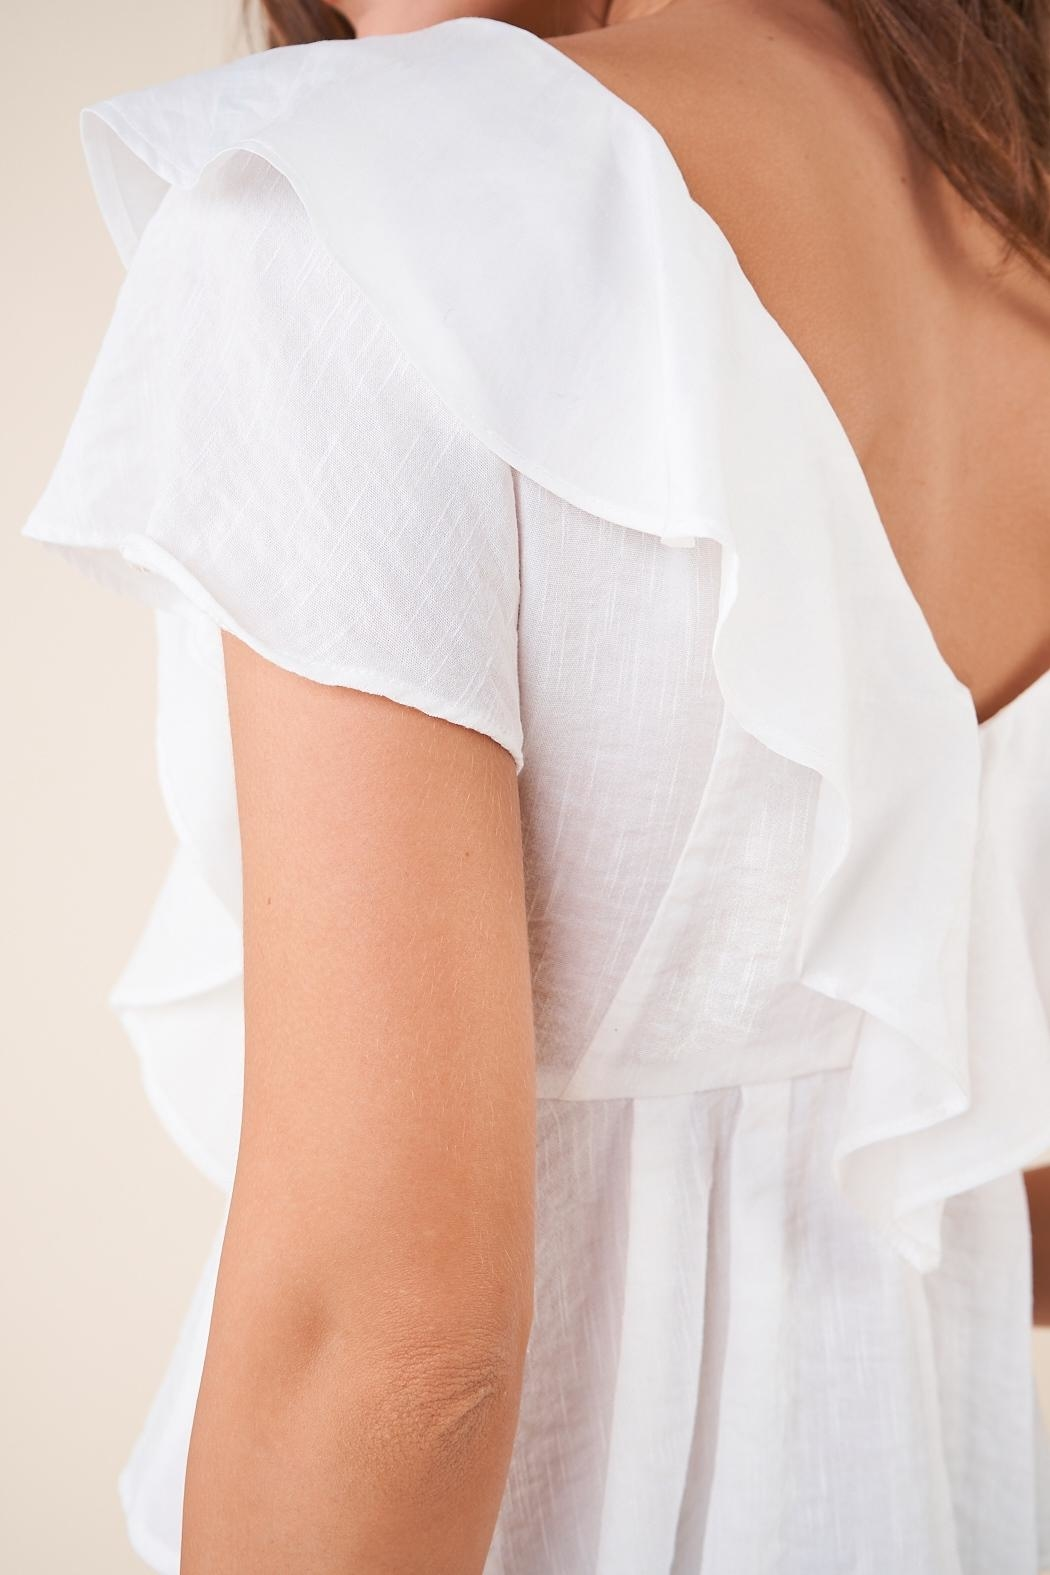 Sugarlips White Ruffle Button-Down Blouse - Front Full Image